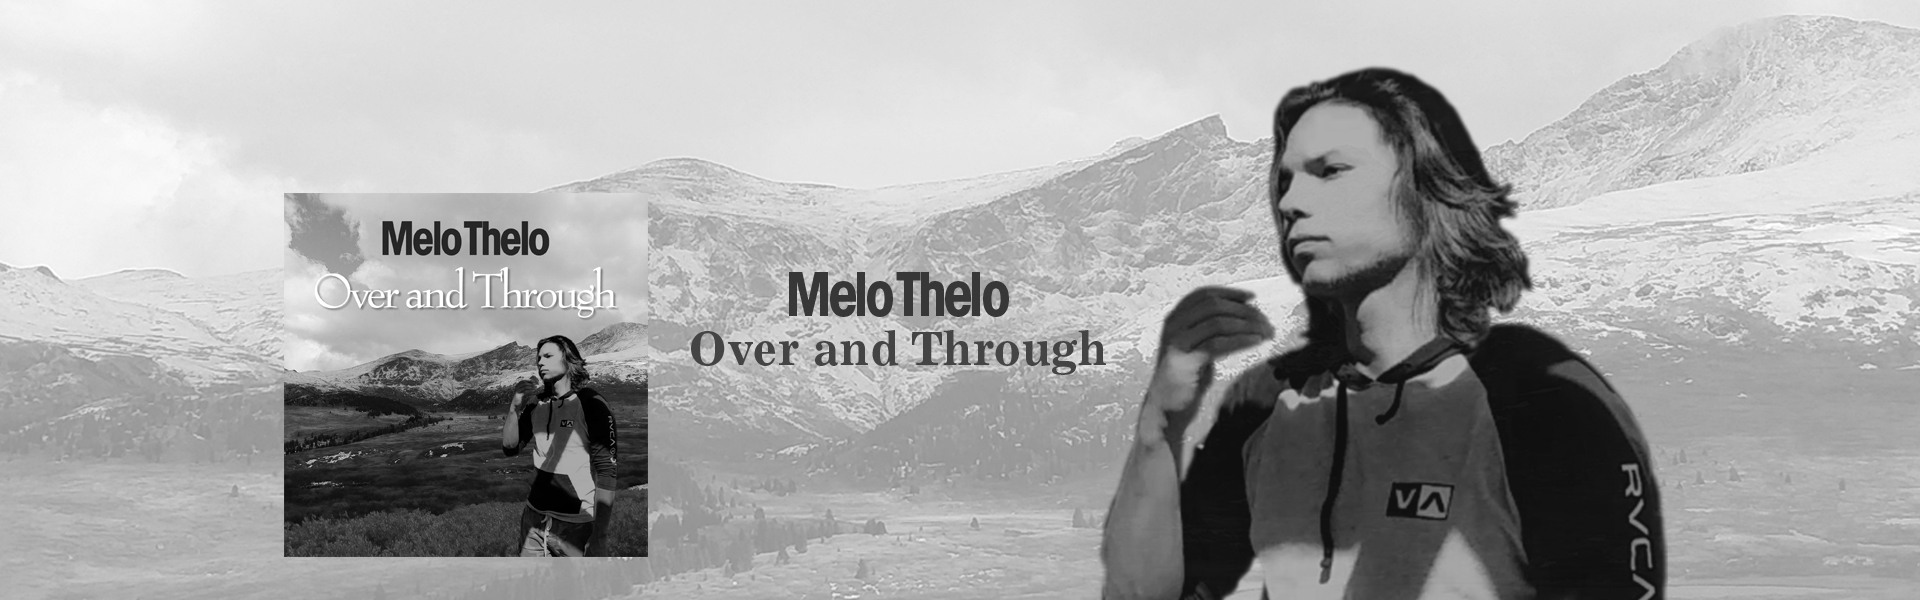 melo thelo - over and through